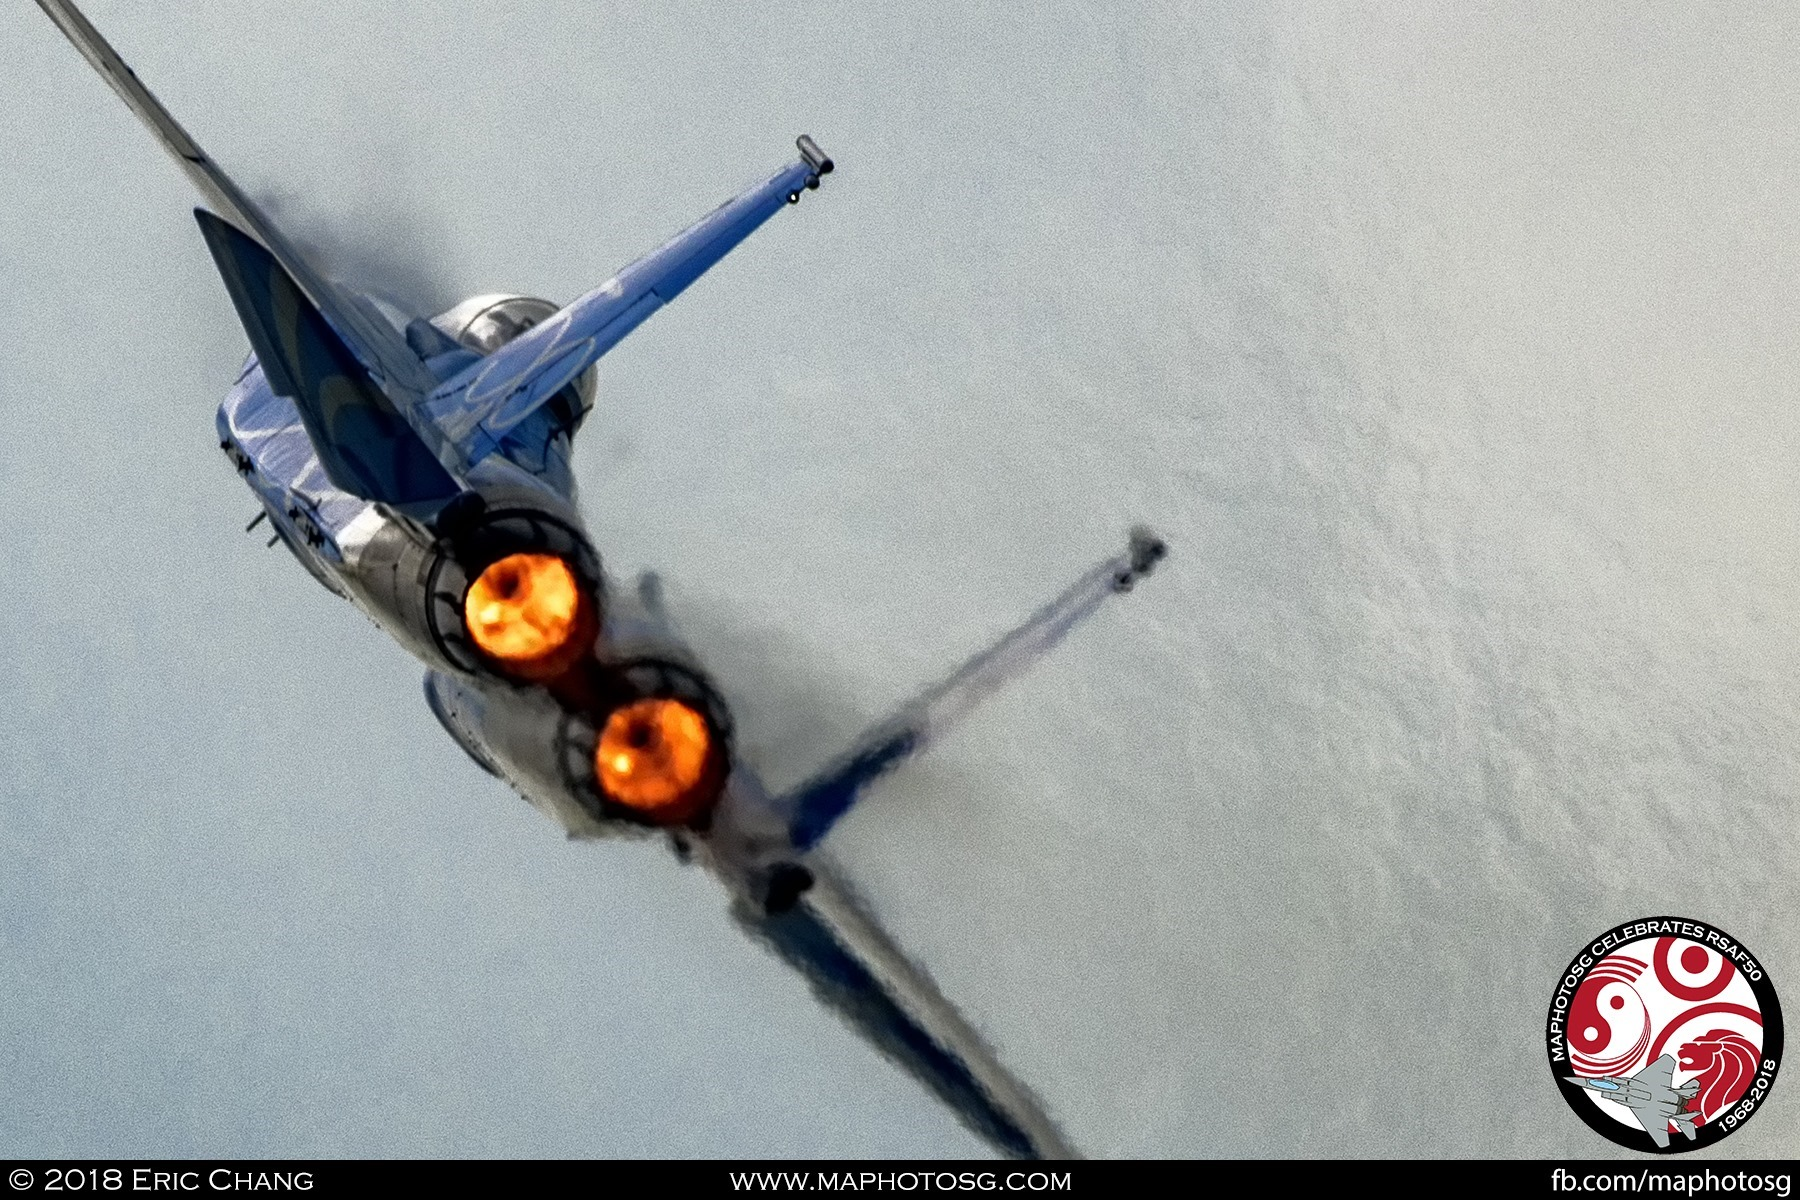 High-G Turn – With full afterburners, the F-15SG pulls up to 9Gs in a 360 degree turn.